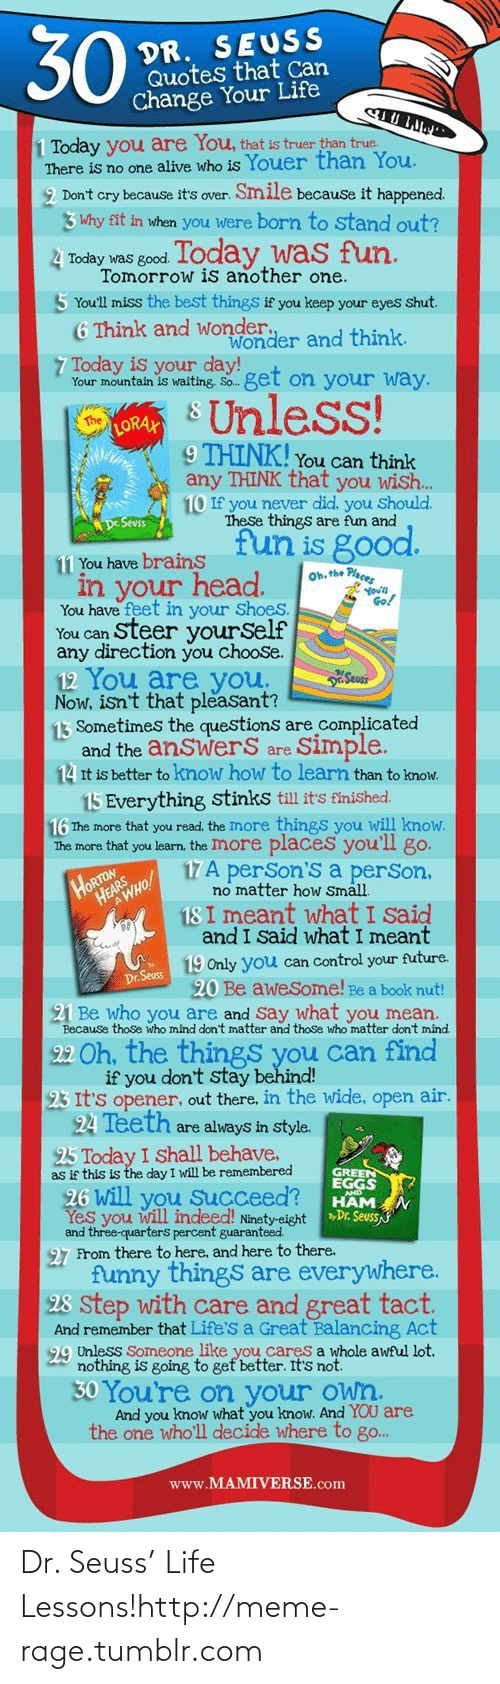 Dr Seuss Quotes: 30  DR. SEUSS  Quotes that Can  Change Your Life  1 Today you are You, that is truer than true.  There is no one alive who is Youer than You.  2 Don't cry because it's over. Smile because it happened.  3 Why fit in when you were born to stand out?  4 Today was good Today was fun.  Tomorrow is another one.  5 You'll miss the best things if you keep your eyes shut.  6 Think and wonder.  Wonder and think.  7 Today is your day!  Your mountain is waiting. So. get on your way.  S Unless!  The  LORAX  9 THINK! You can think  any THINK that you wish..  10 If you never did, you Should.  These things are fun and  De Seuss  fun is good.  11 You have brains  Oh. the Places  in your head.  Go!  You have feet in your Shoes.  You can Steer yourSelf  any direction you choose.  12 You are you.  Now, isn't that pleasant?  13 Sometimes the questions are complicated  and the anSwerS are  14 It is better to know how to learn than to know.  Seus  Simple.  15 Everything stinks till it's finished.  16 The more that you read. the Imore things you will know.  The more that you learn. the Imore places you'll go.  HORTON  HEAR HO!  17A perSon'S a perSon,  no matter how Small.  18 I meant what I said  and I Said what I meant  19 Only you can Control your future.  20 Be awesome! Be a book nut!  21 Be who you are and Say what you mean.  Dr. Seuss  Because those who mind don't matter and those who matter don't mind.  22 Oh, the things you can find  if you don't stay behind!  23 It's opener, out there, in the wide, open air.  24 Teeth are always in style.  25 Today I Shall behave,  as if this is the day I will be remembered  GREEN  EGGS  26 will you Succeed?  Yes you will indeed! Ninety-eight »Dr. Seuss  and three-quarters percent guaranteed  27 From there to here, and here to there.  funny things are everywhere.  28 step with care and great tact.  And remember that Life's a Great Balancing Act  99 Unless Someone like you cares a whole awful lot.  nothing is going to get better. It